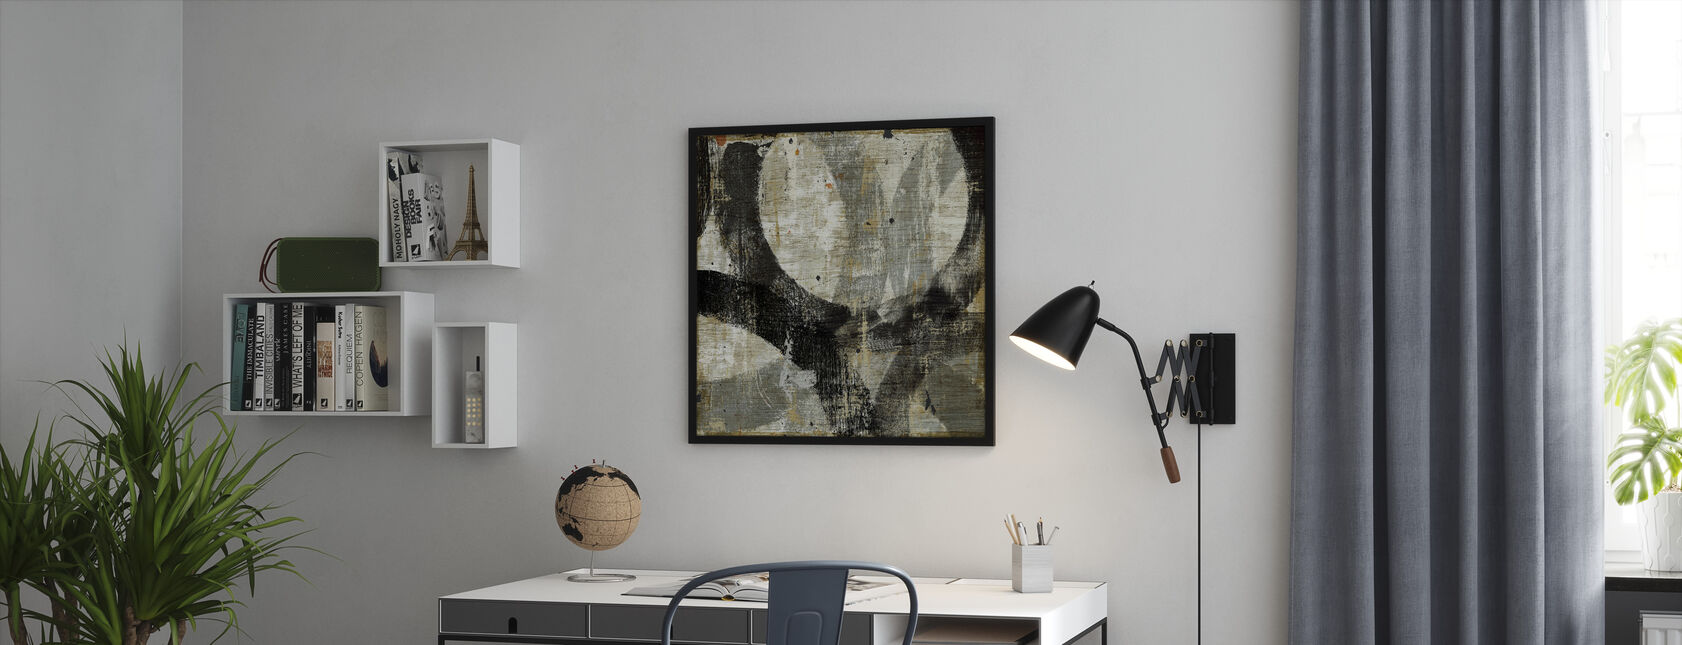 Geometric Abstract II - Framed print - Office